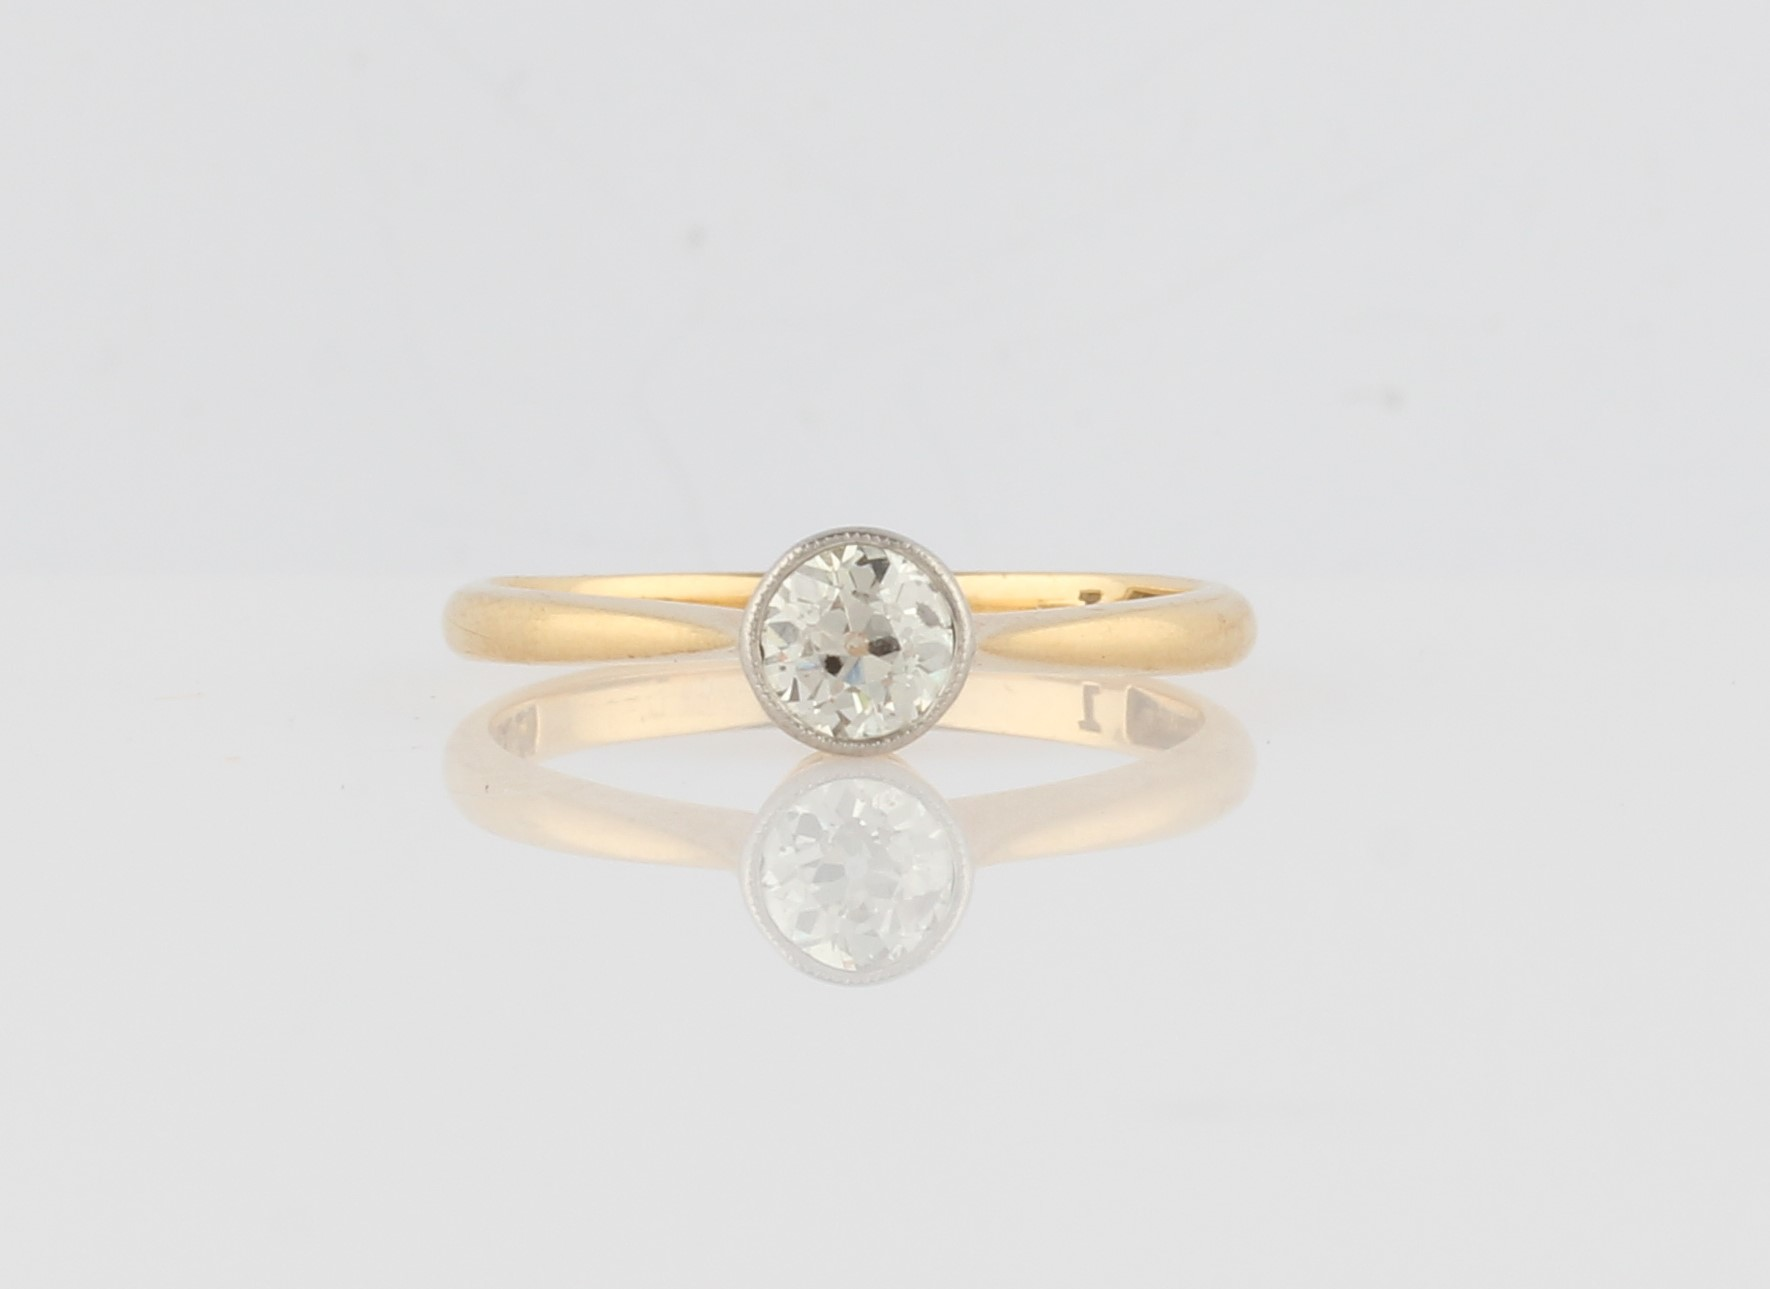 Lot 30 - A diamond solitaire ring, bezel set with an Old European cut diamond, measuring approx. 0.40ct,